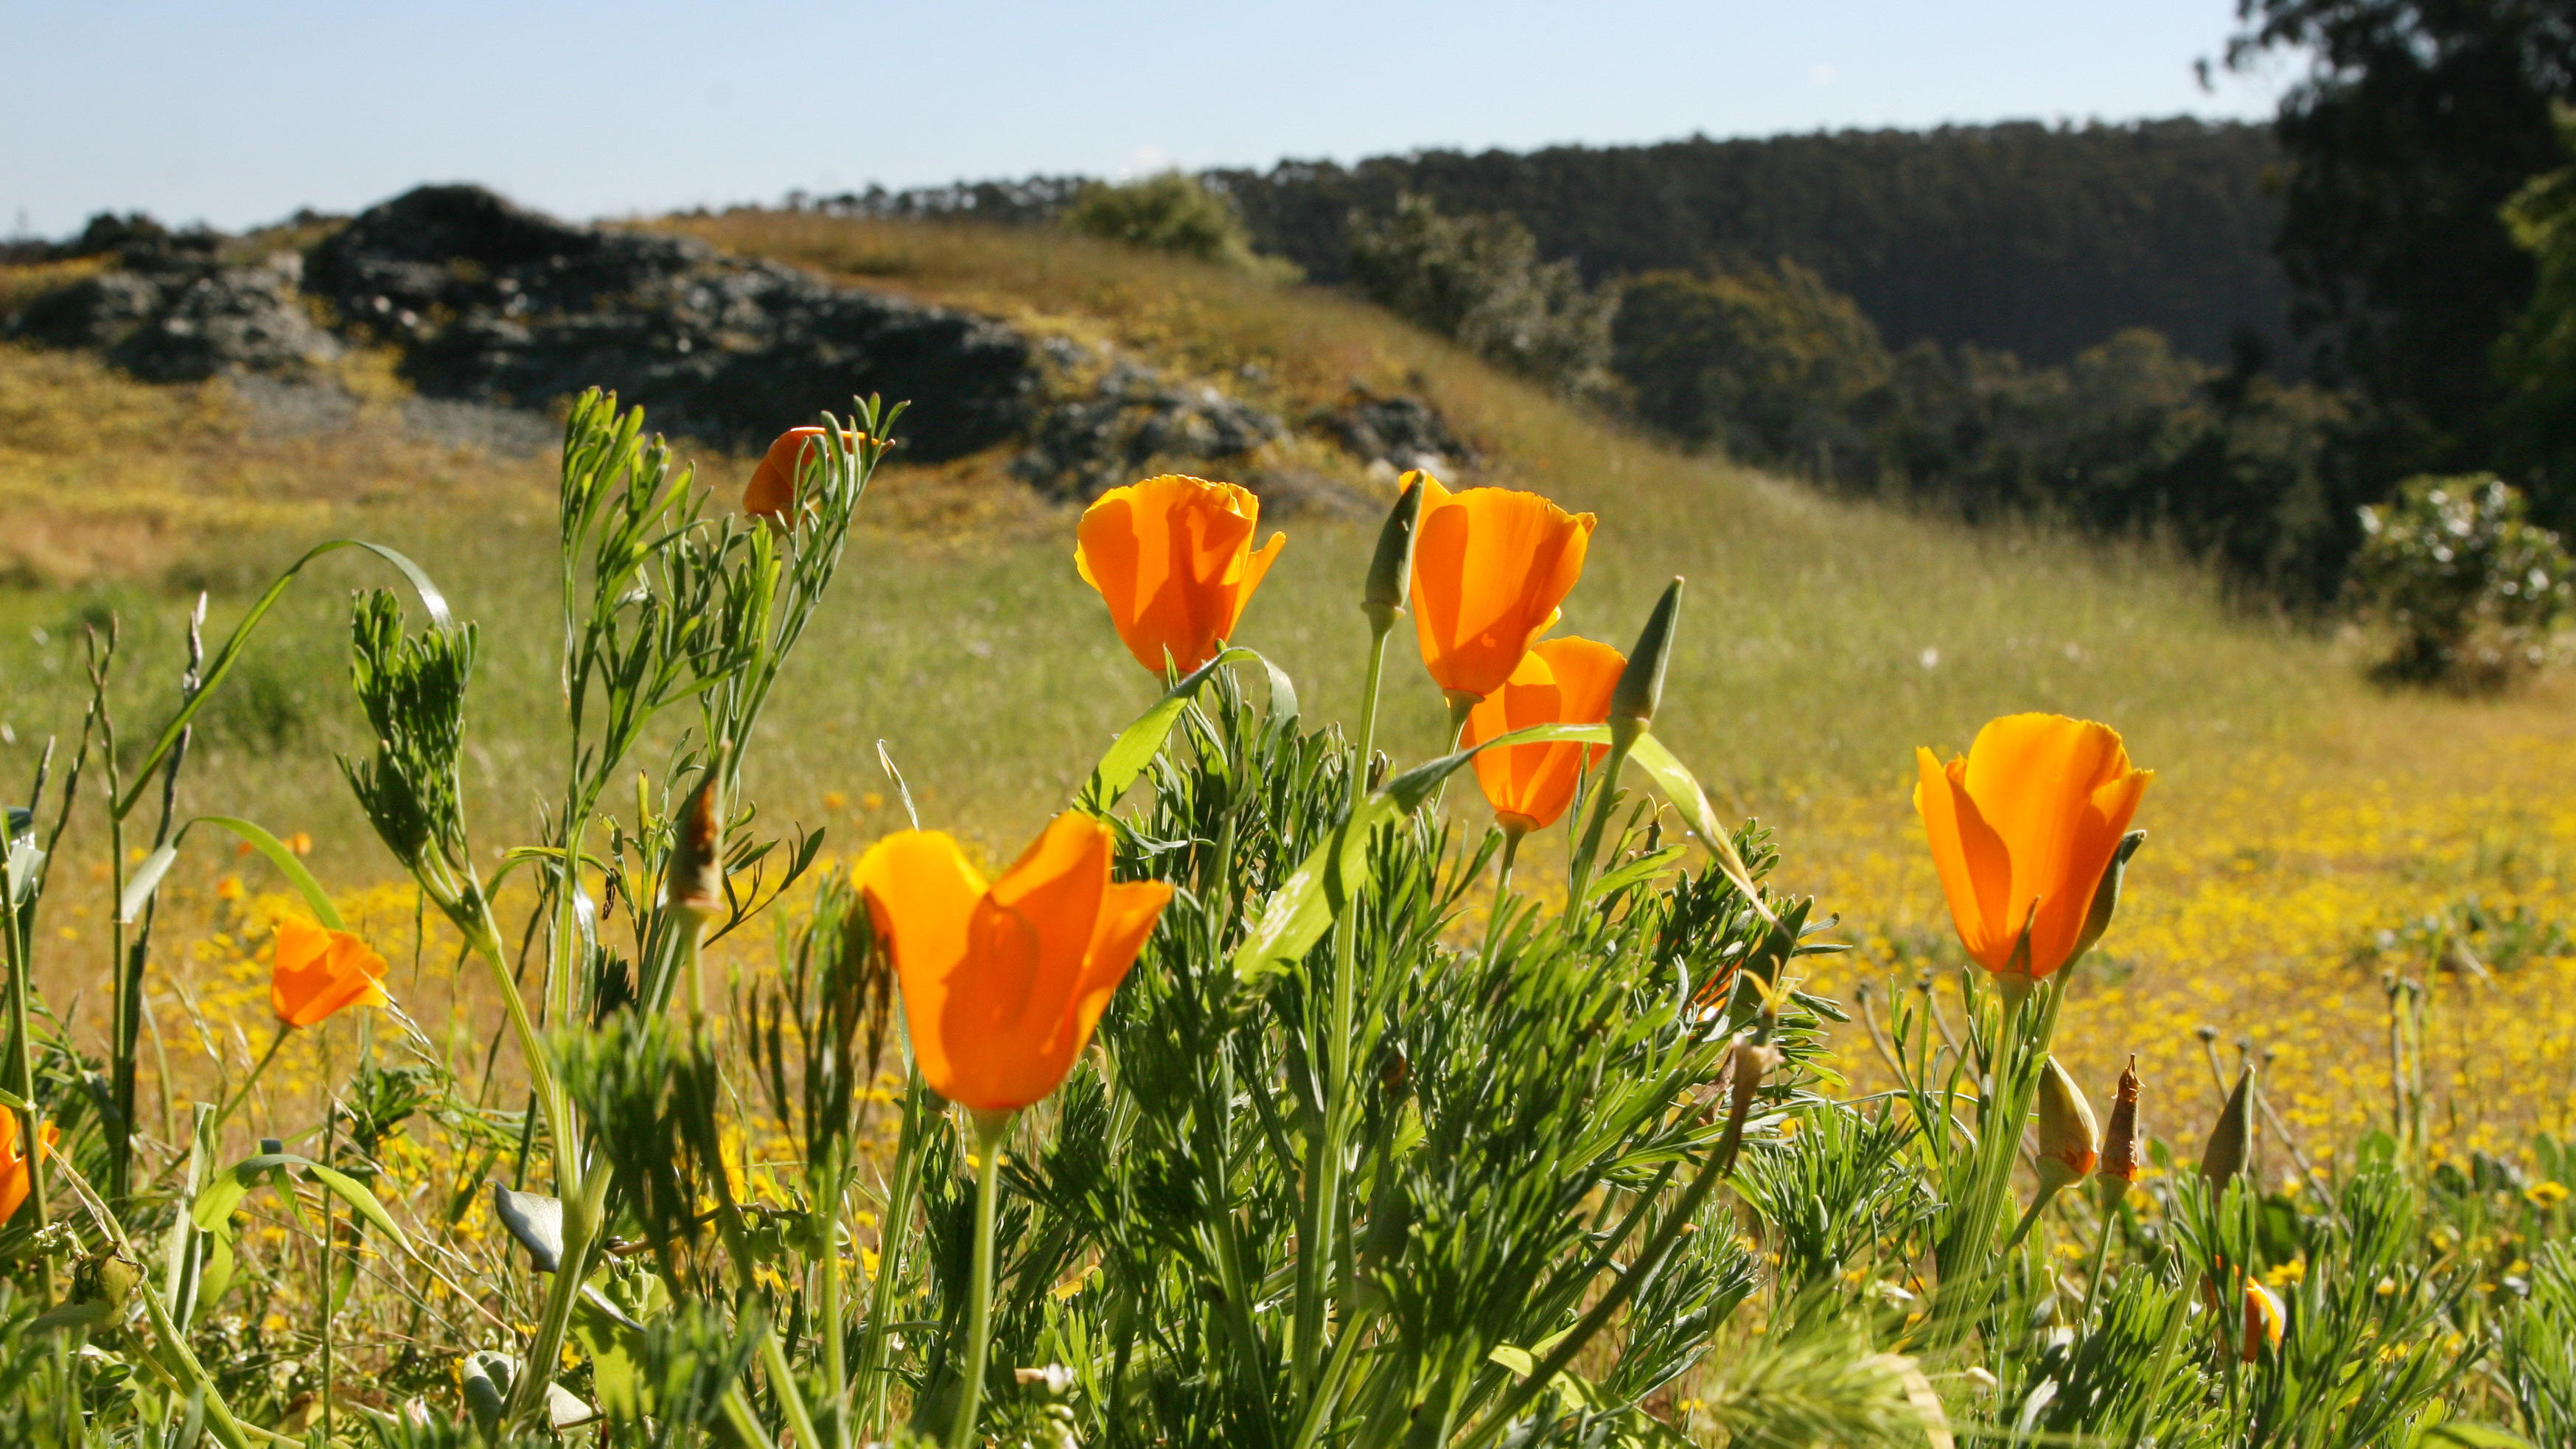 California poppies seen in the Golden Gate National Parks.